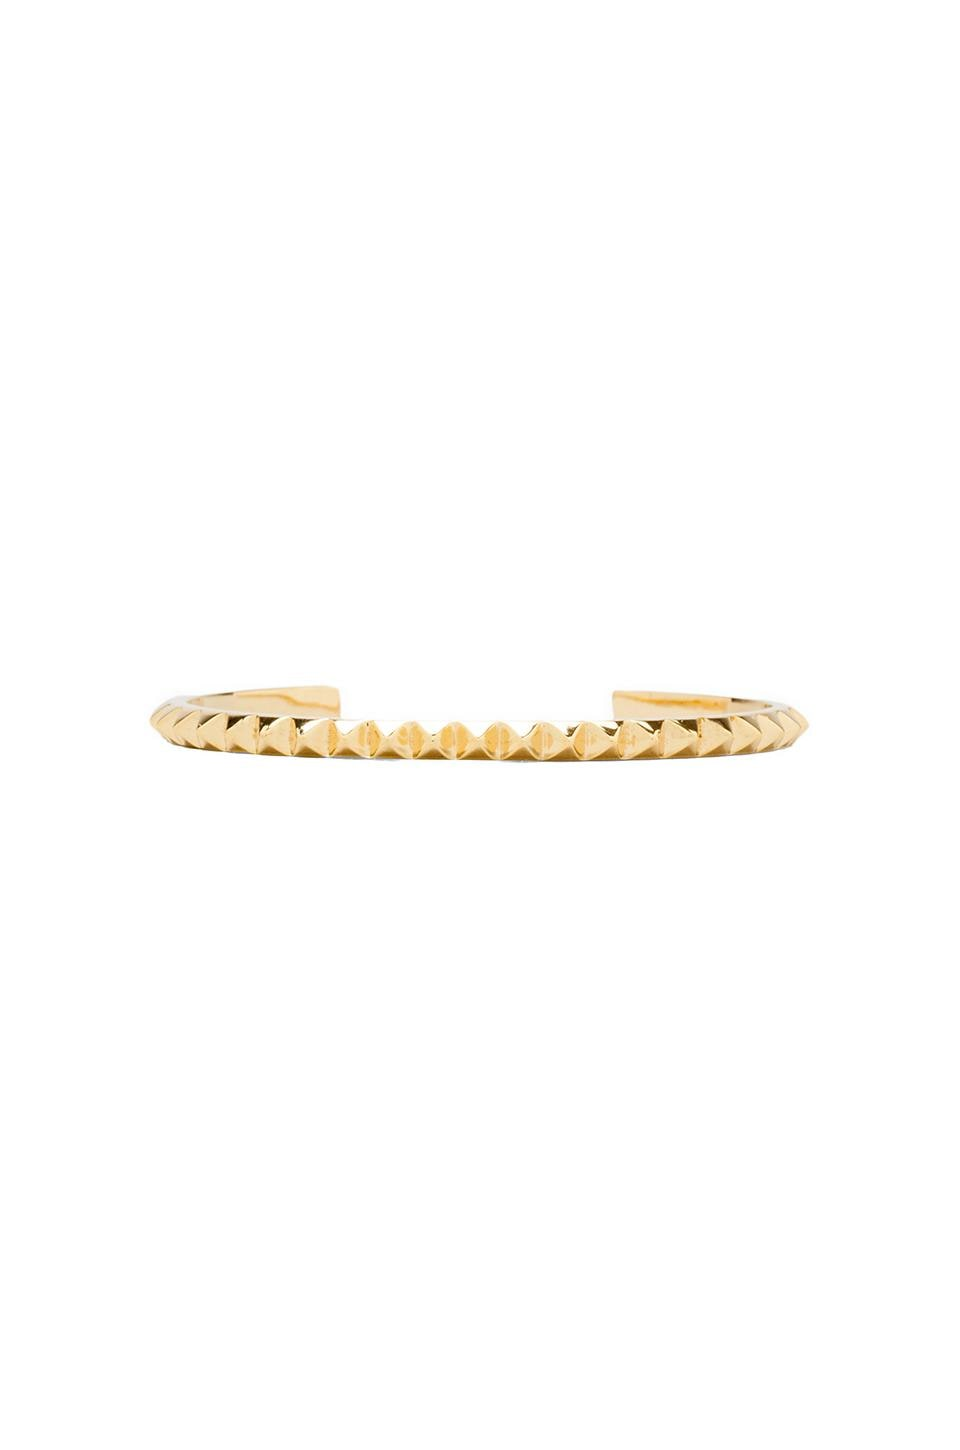 joolz by Martha Calvo Pyramid Stud Cuff in Gold